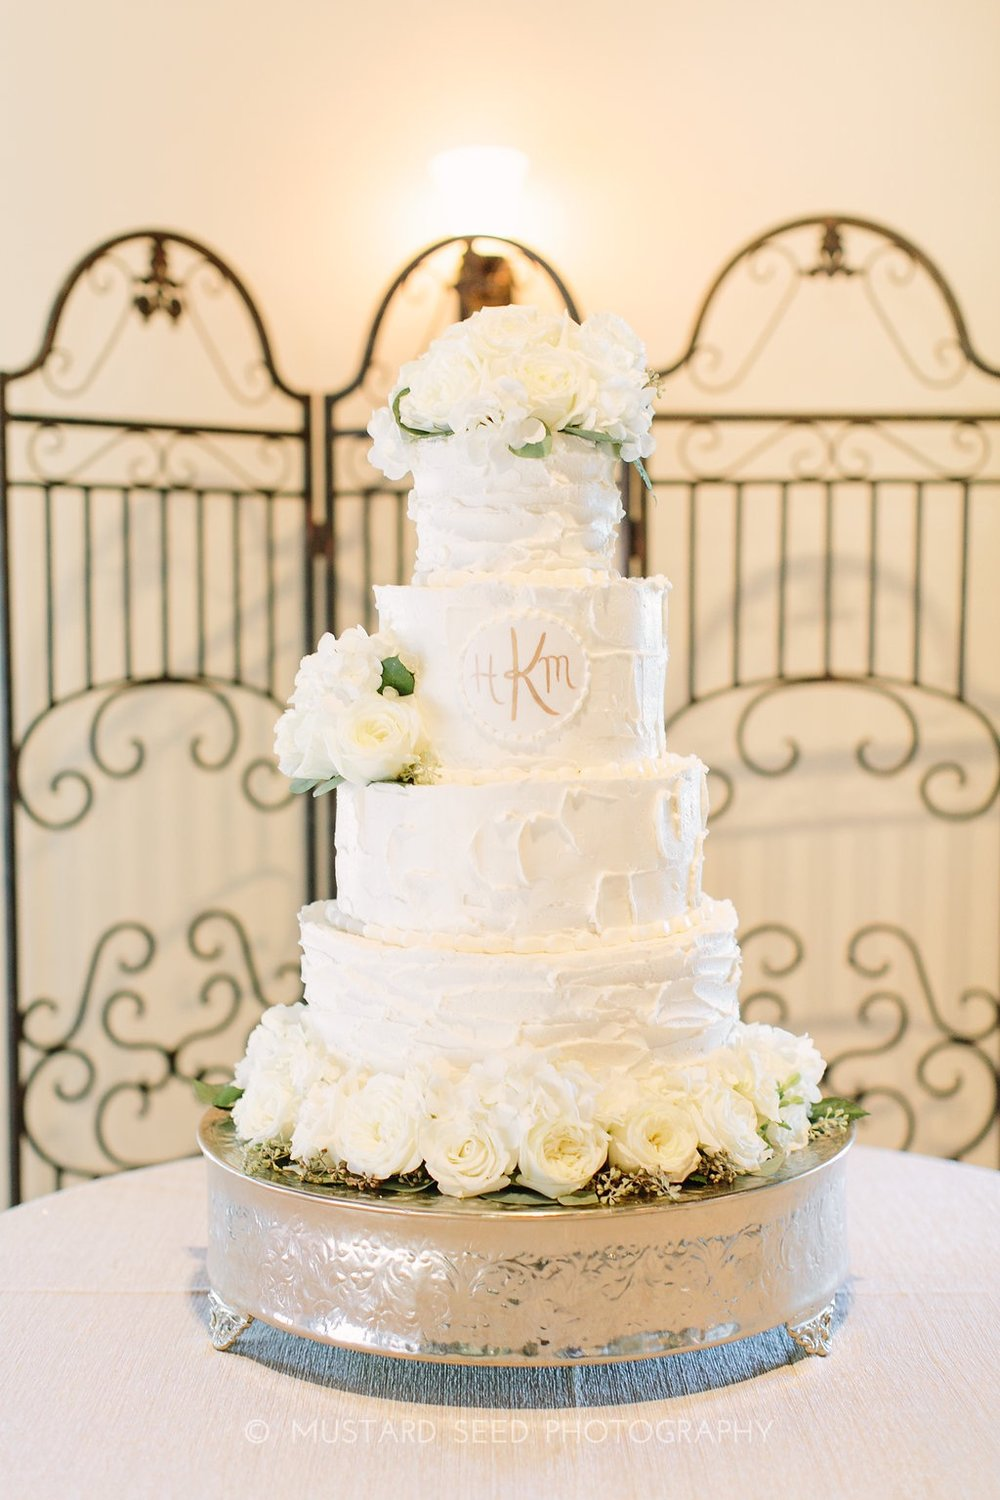 white-wedding-cake-ivory-florals-greenery-by-maxit-flower-design-in-houston-texas